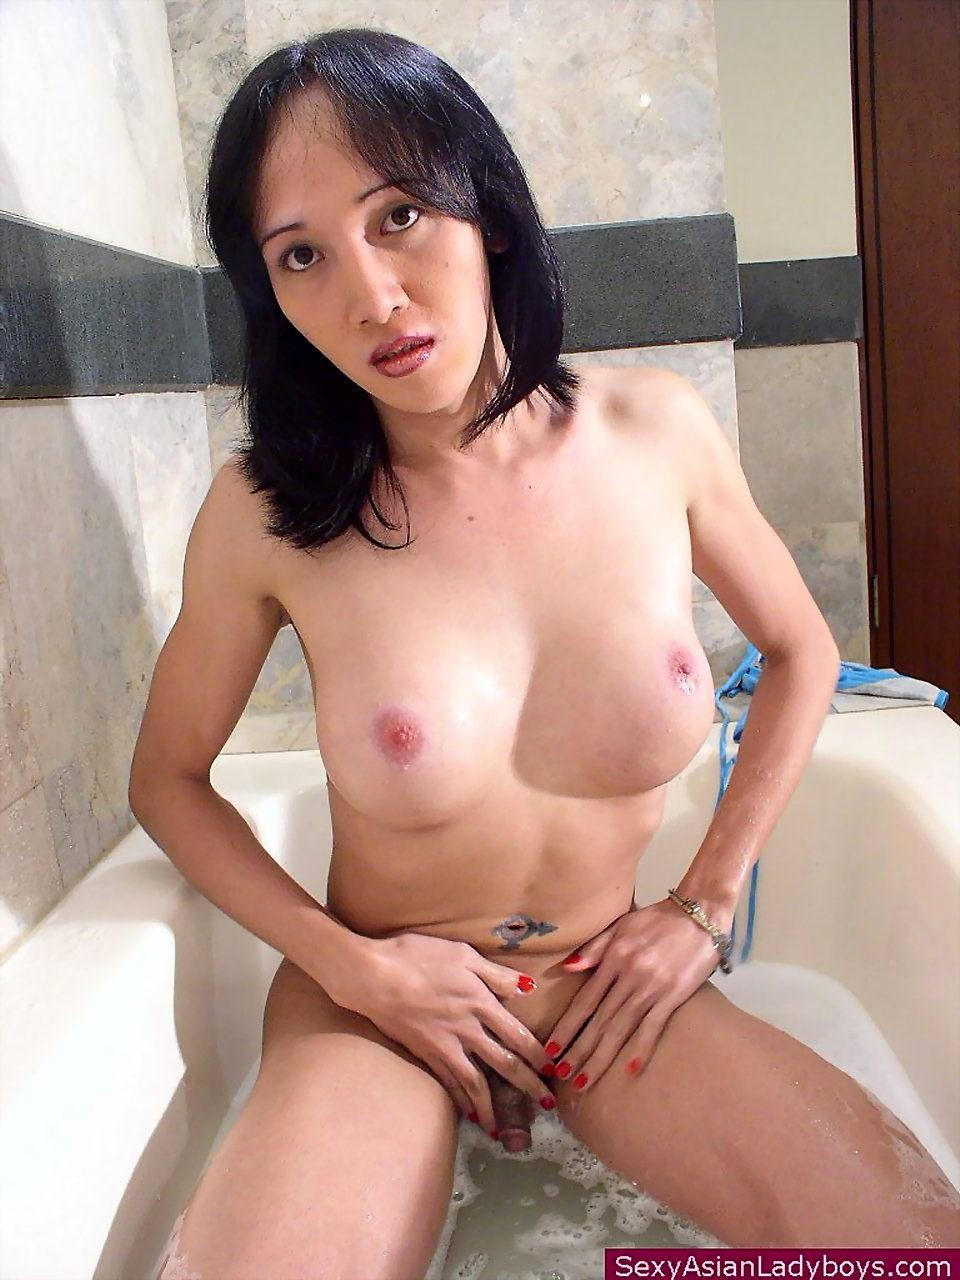 Cute Asian Shemale Pinky Playing With Her Anal Beads